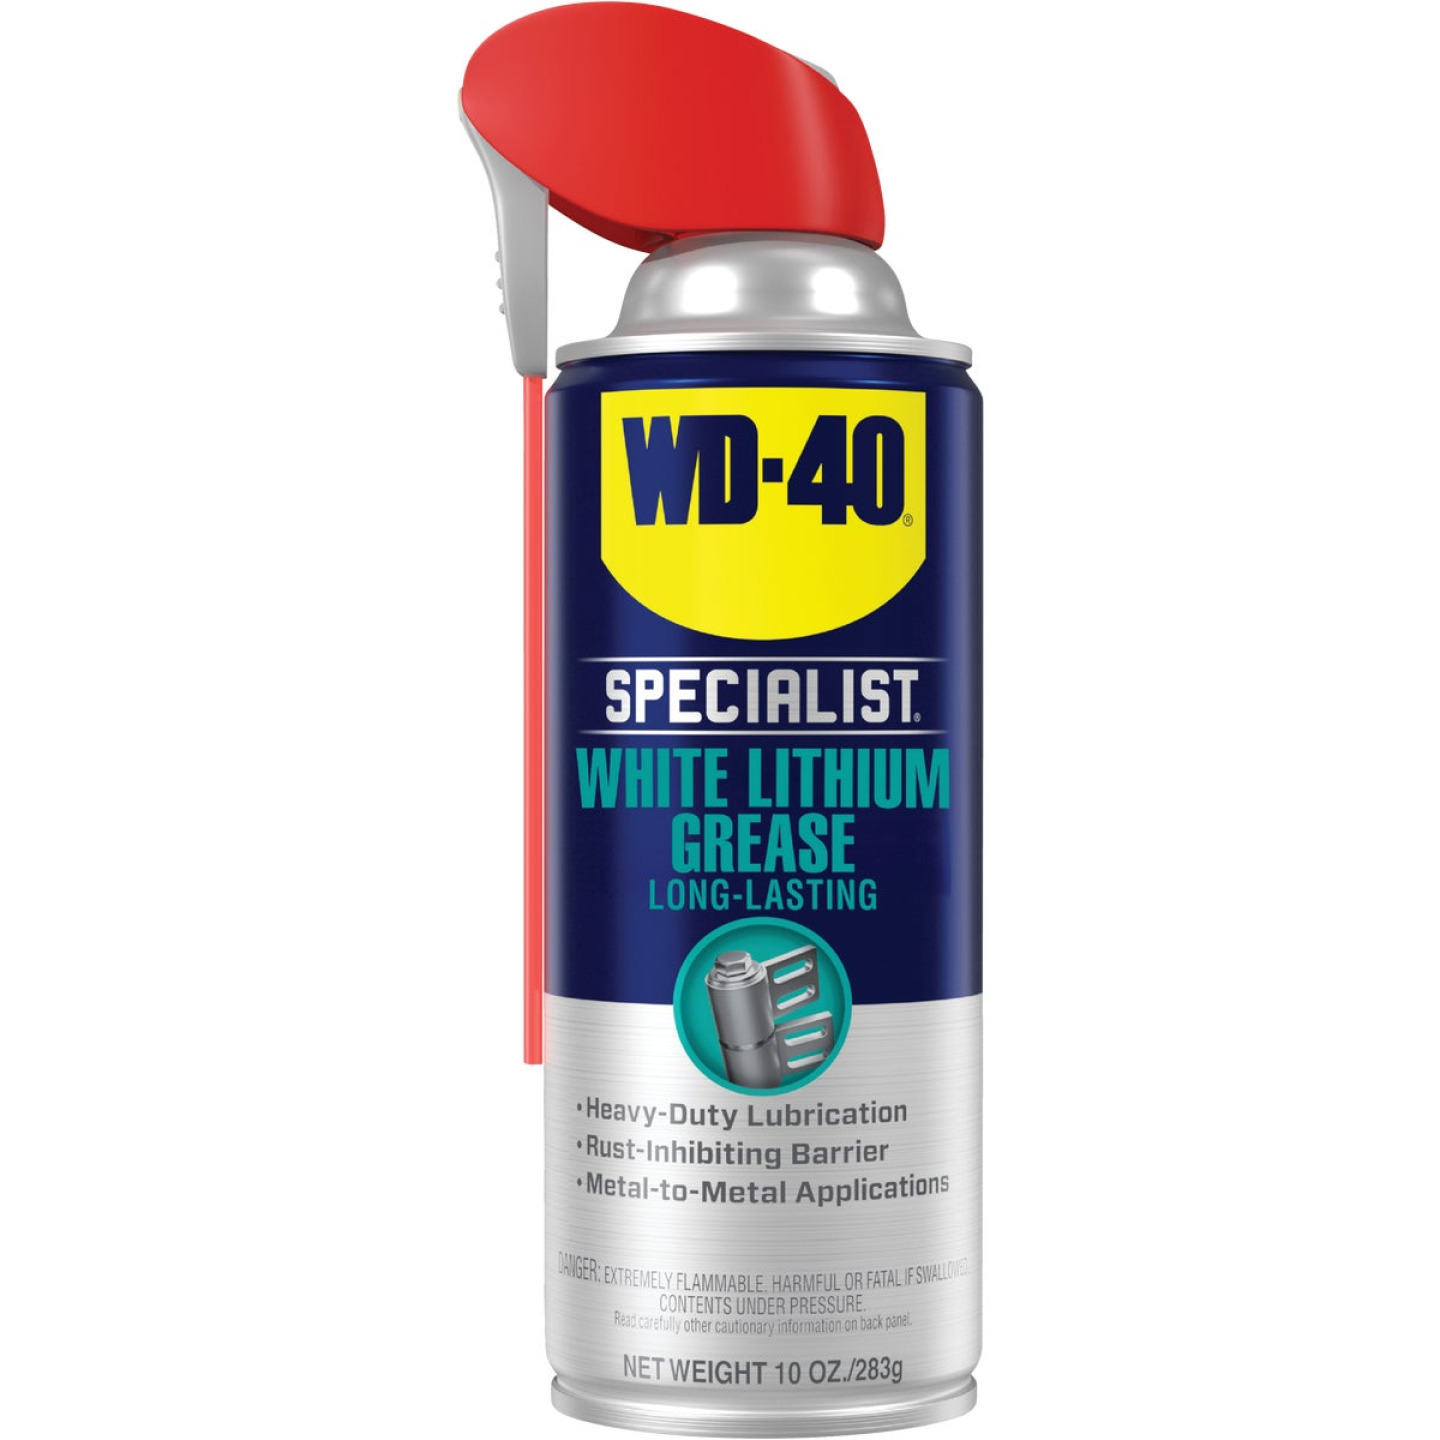 WD-40 Specialist 10 Oz. Aerosol Protective White Lithium Grease Image 1